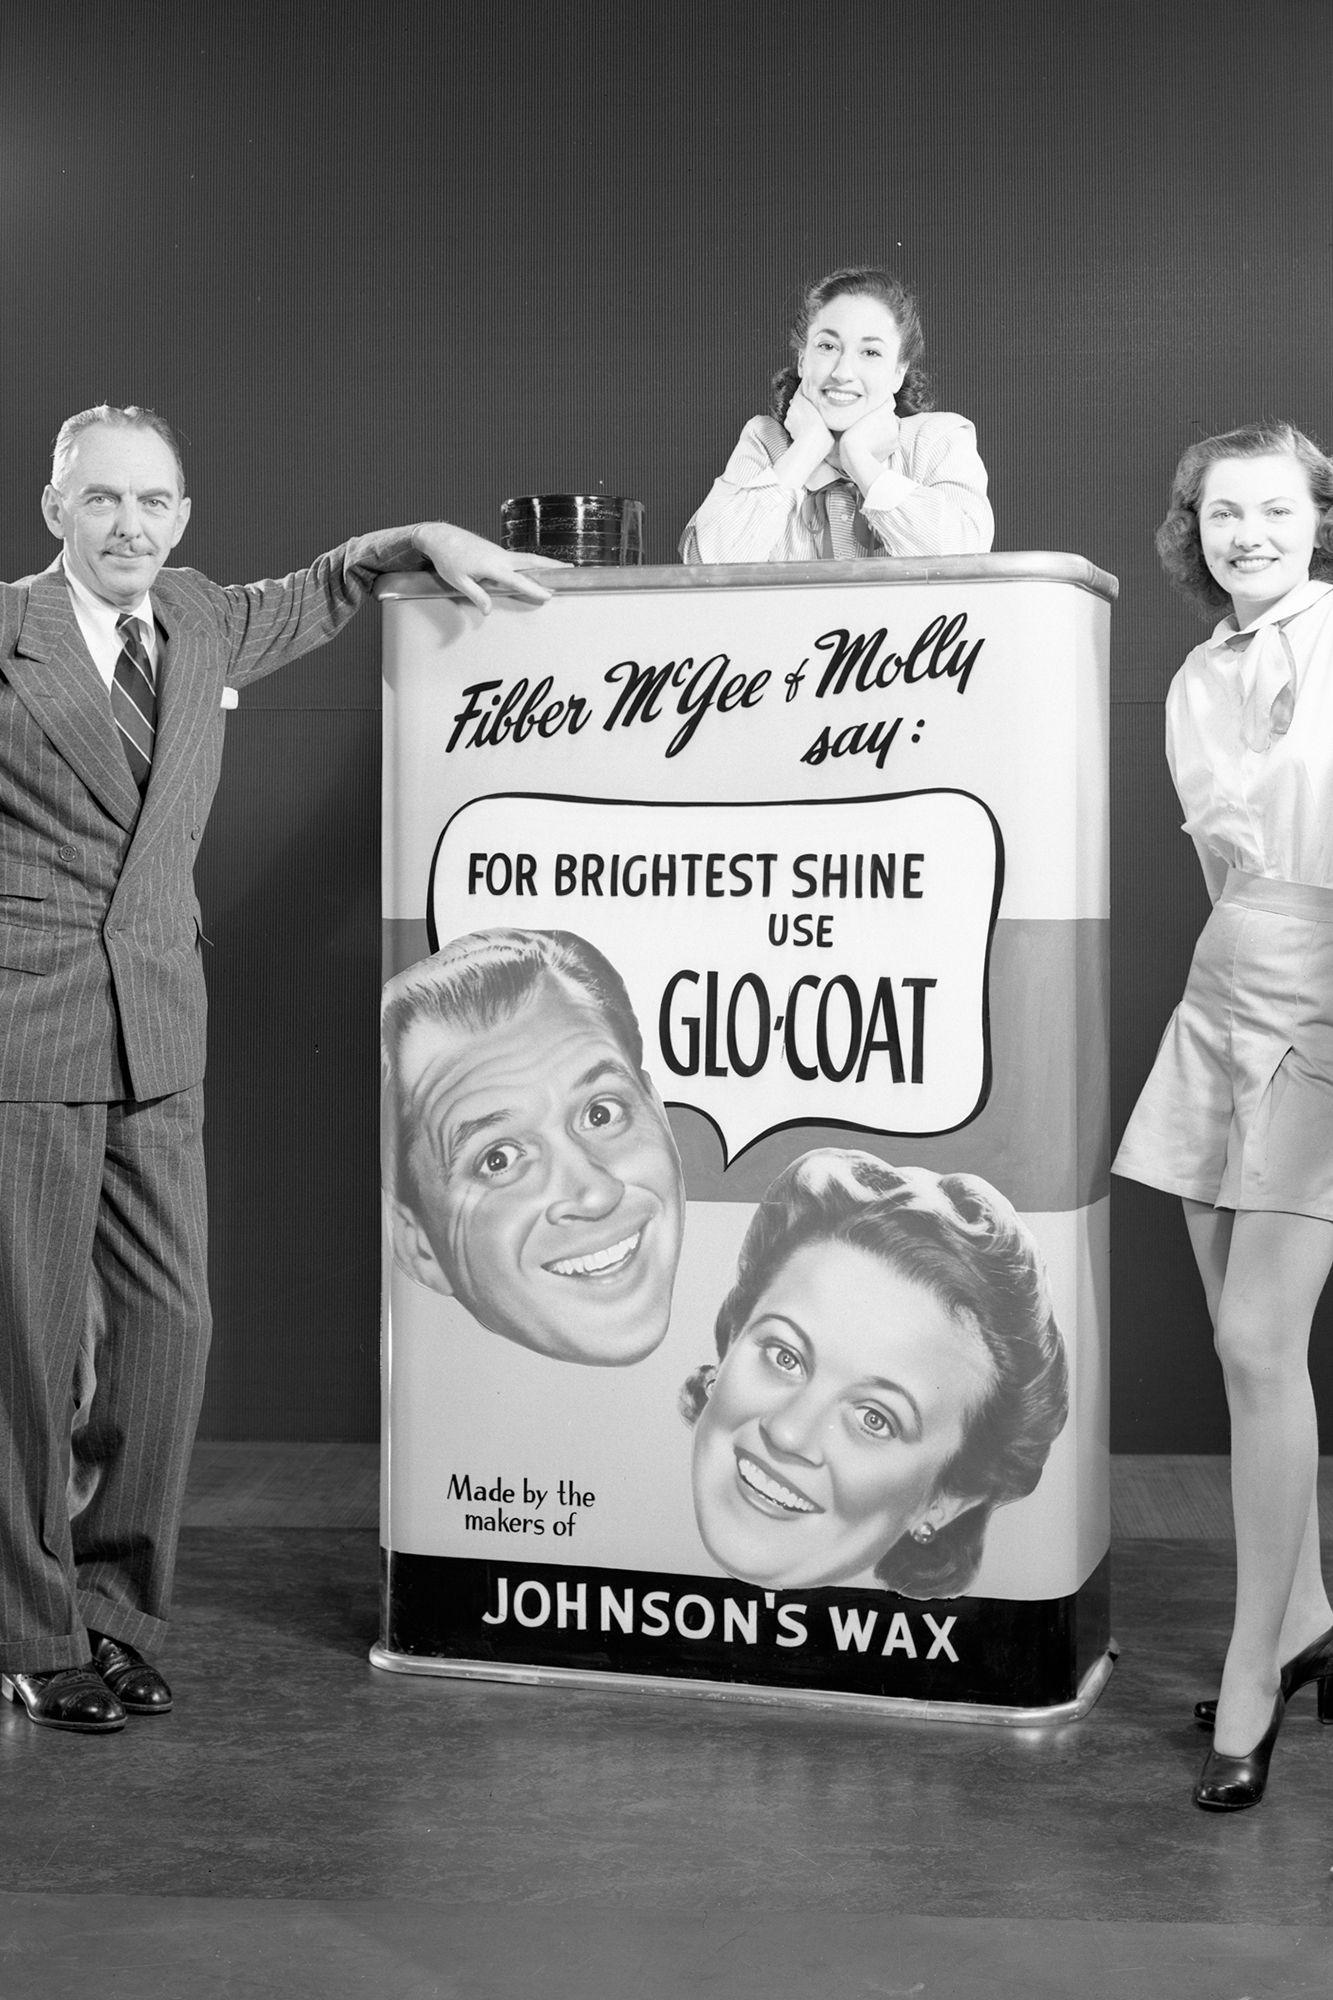 Vintage Glo-Coat™ ad from Fibber McGee and Molly old time radio show.